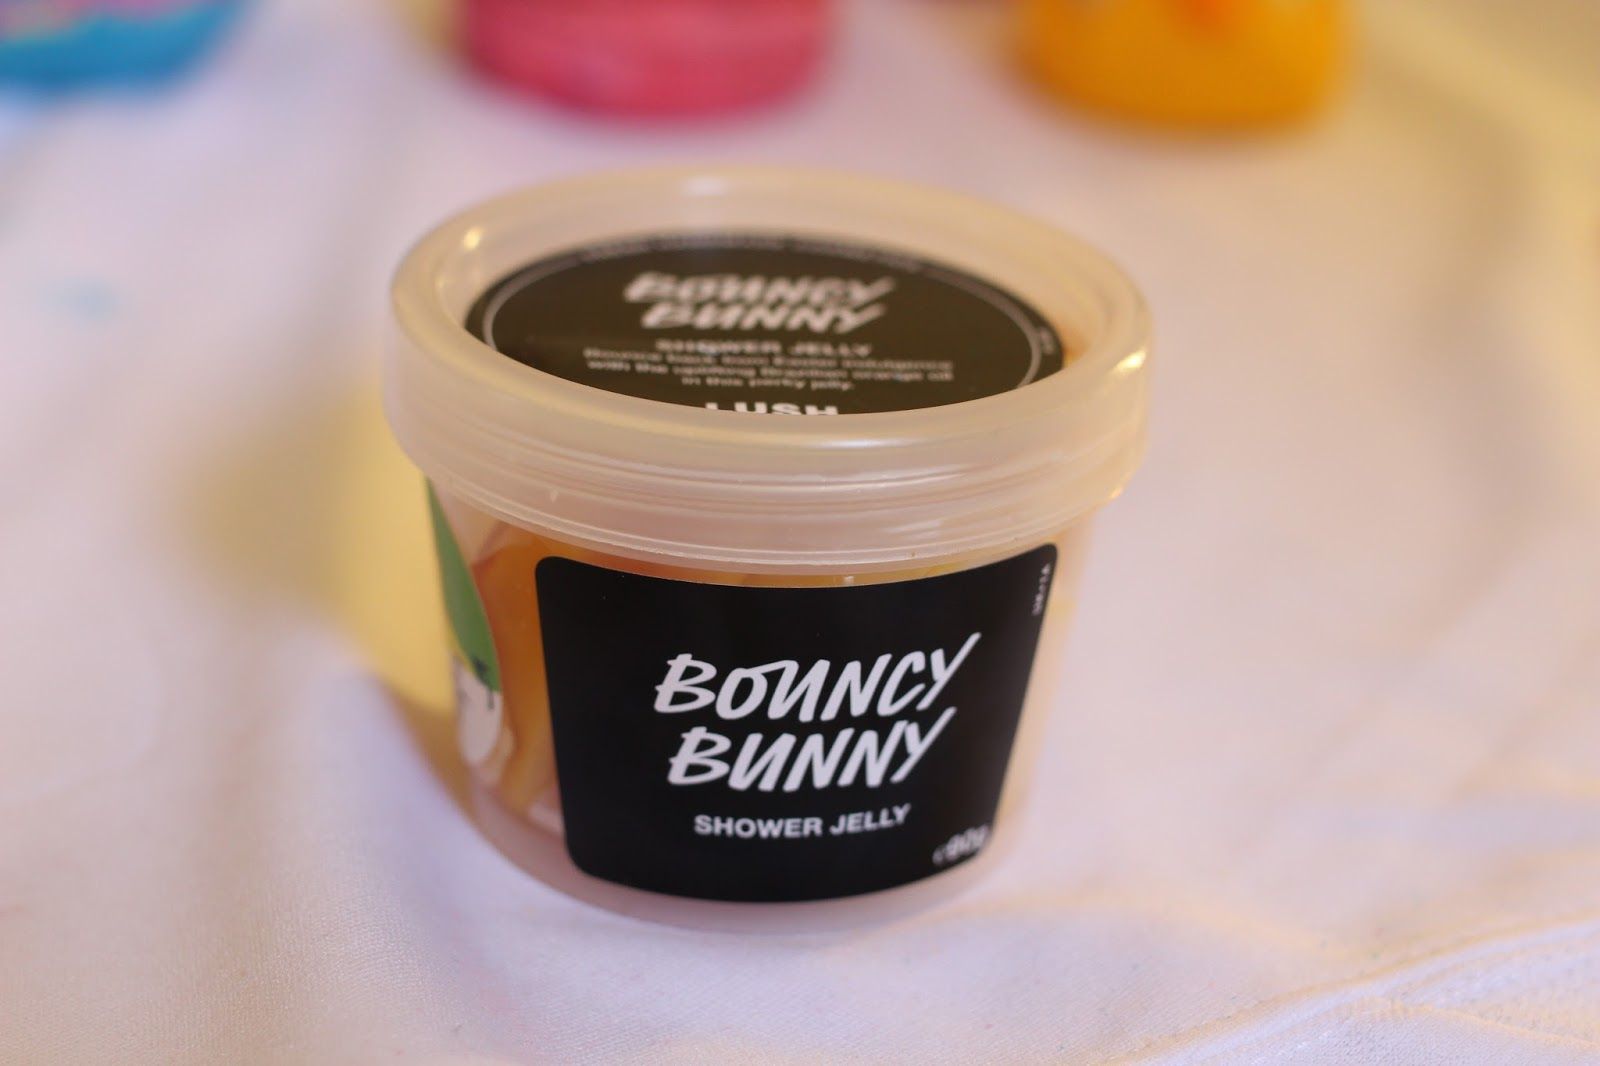 Bouncy Bunny Shower Jelly